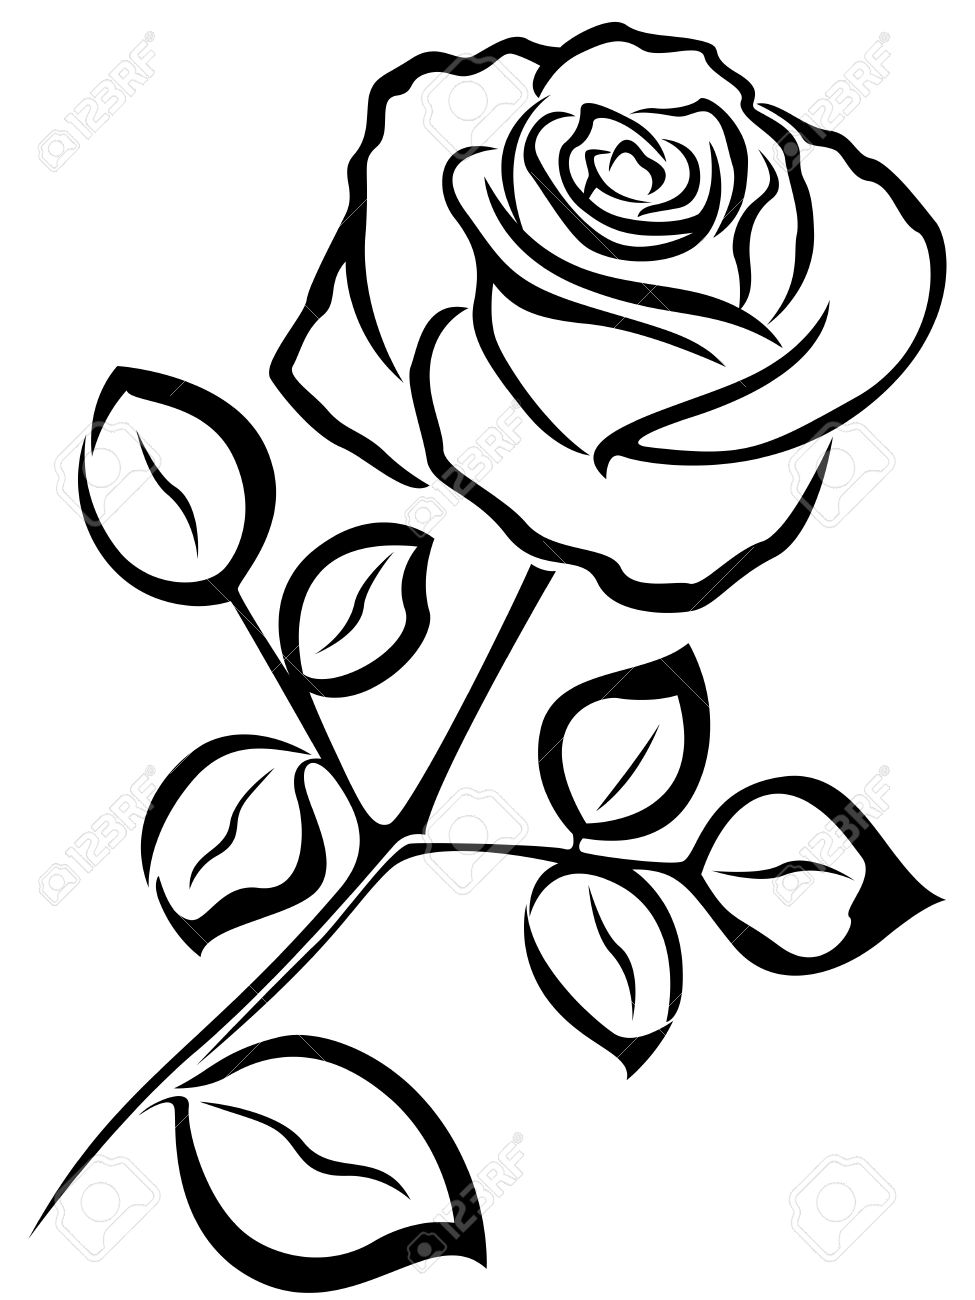 Roses In Black And White Drawing At Getdrawings Free For